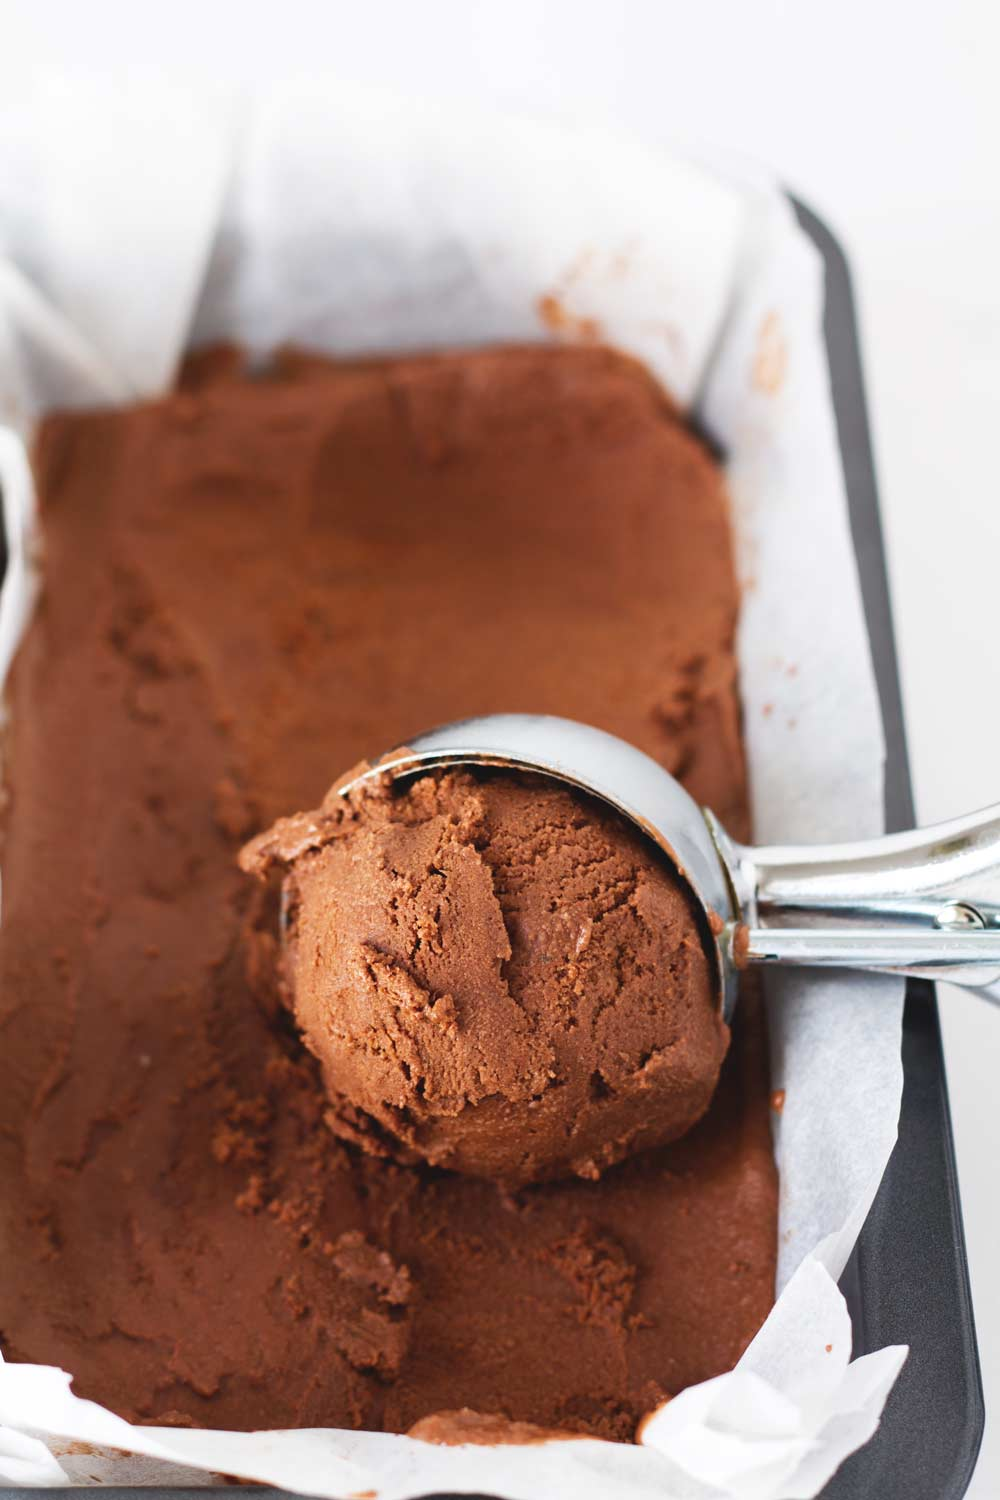 guilt-free chocolate ice cream